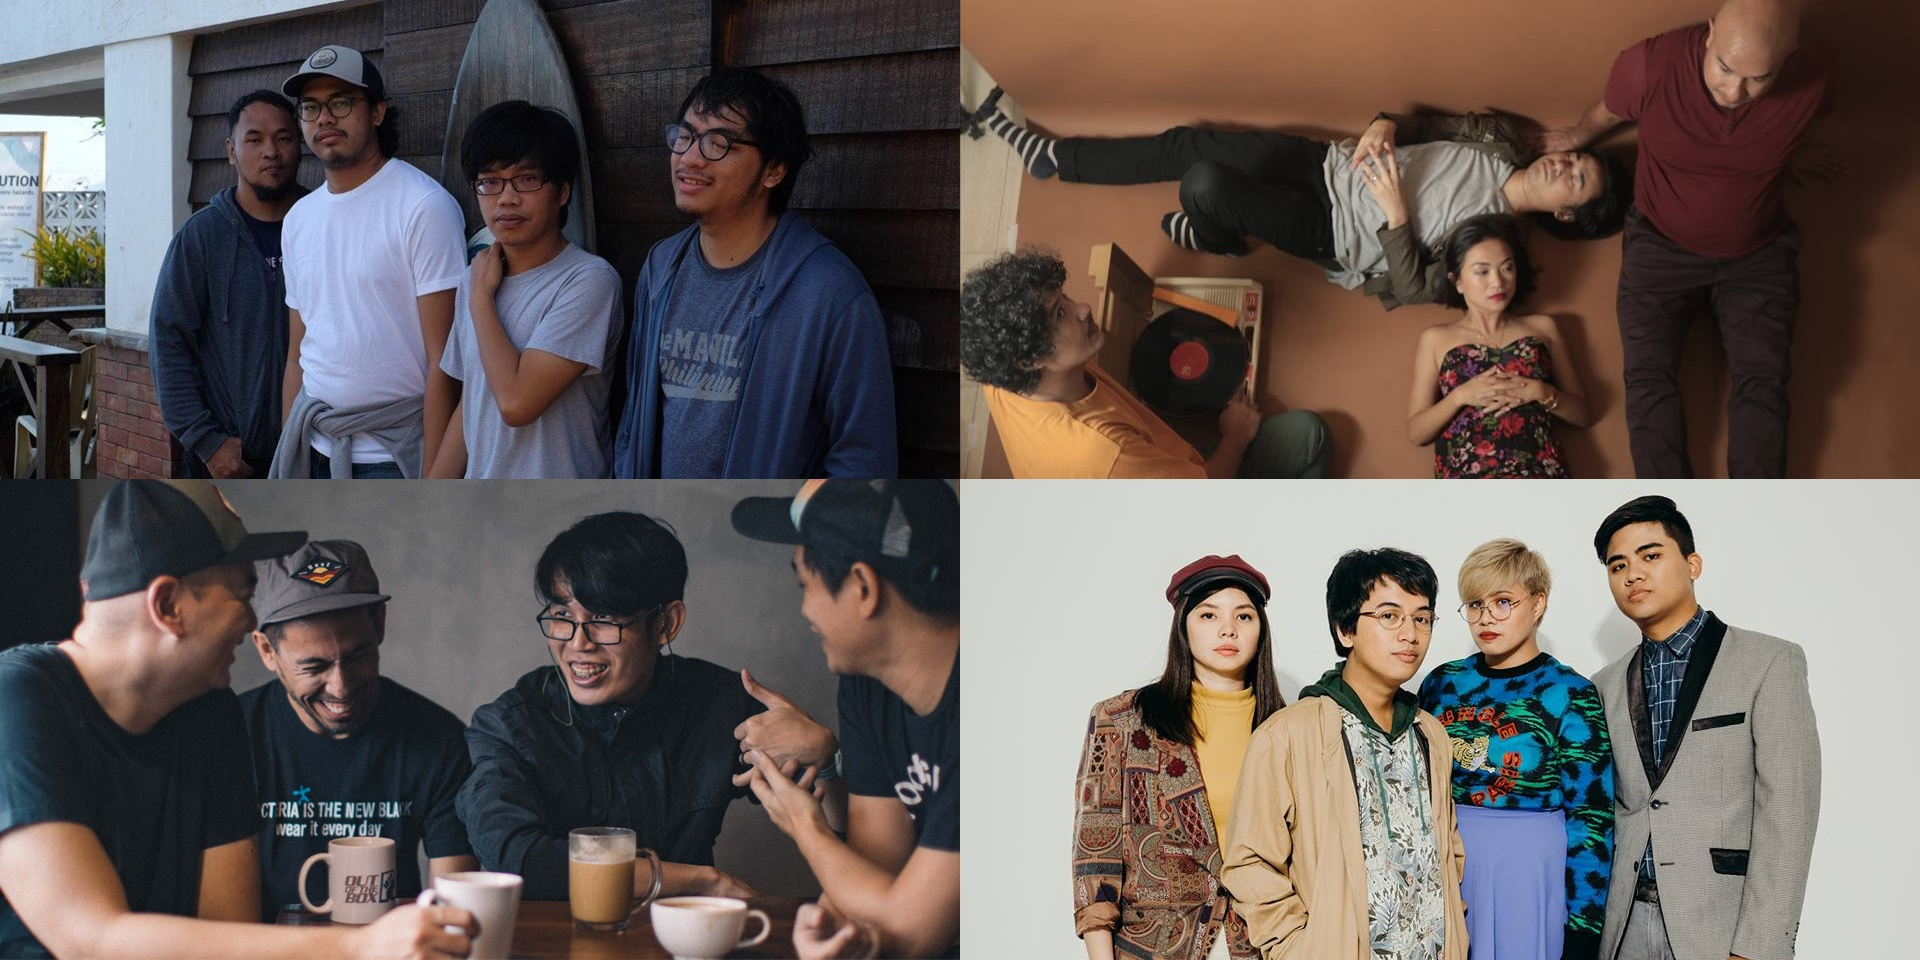 The Geeks, We Are Imaginary, Ciudad, and more to perform at Free the Sea Movement 4 in Baler